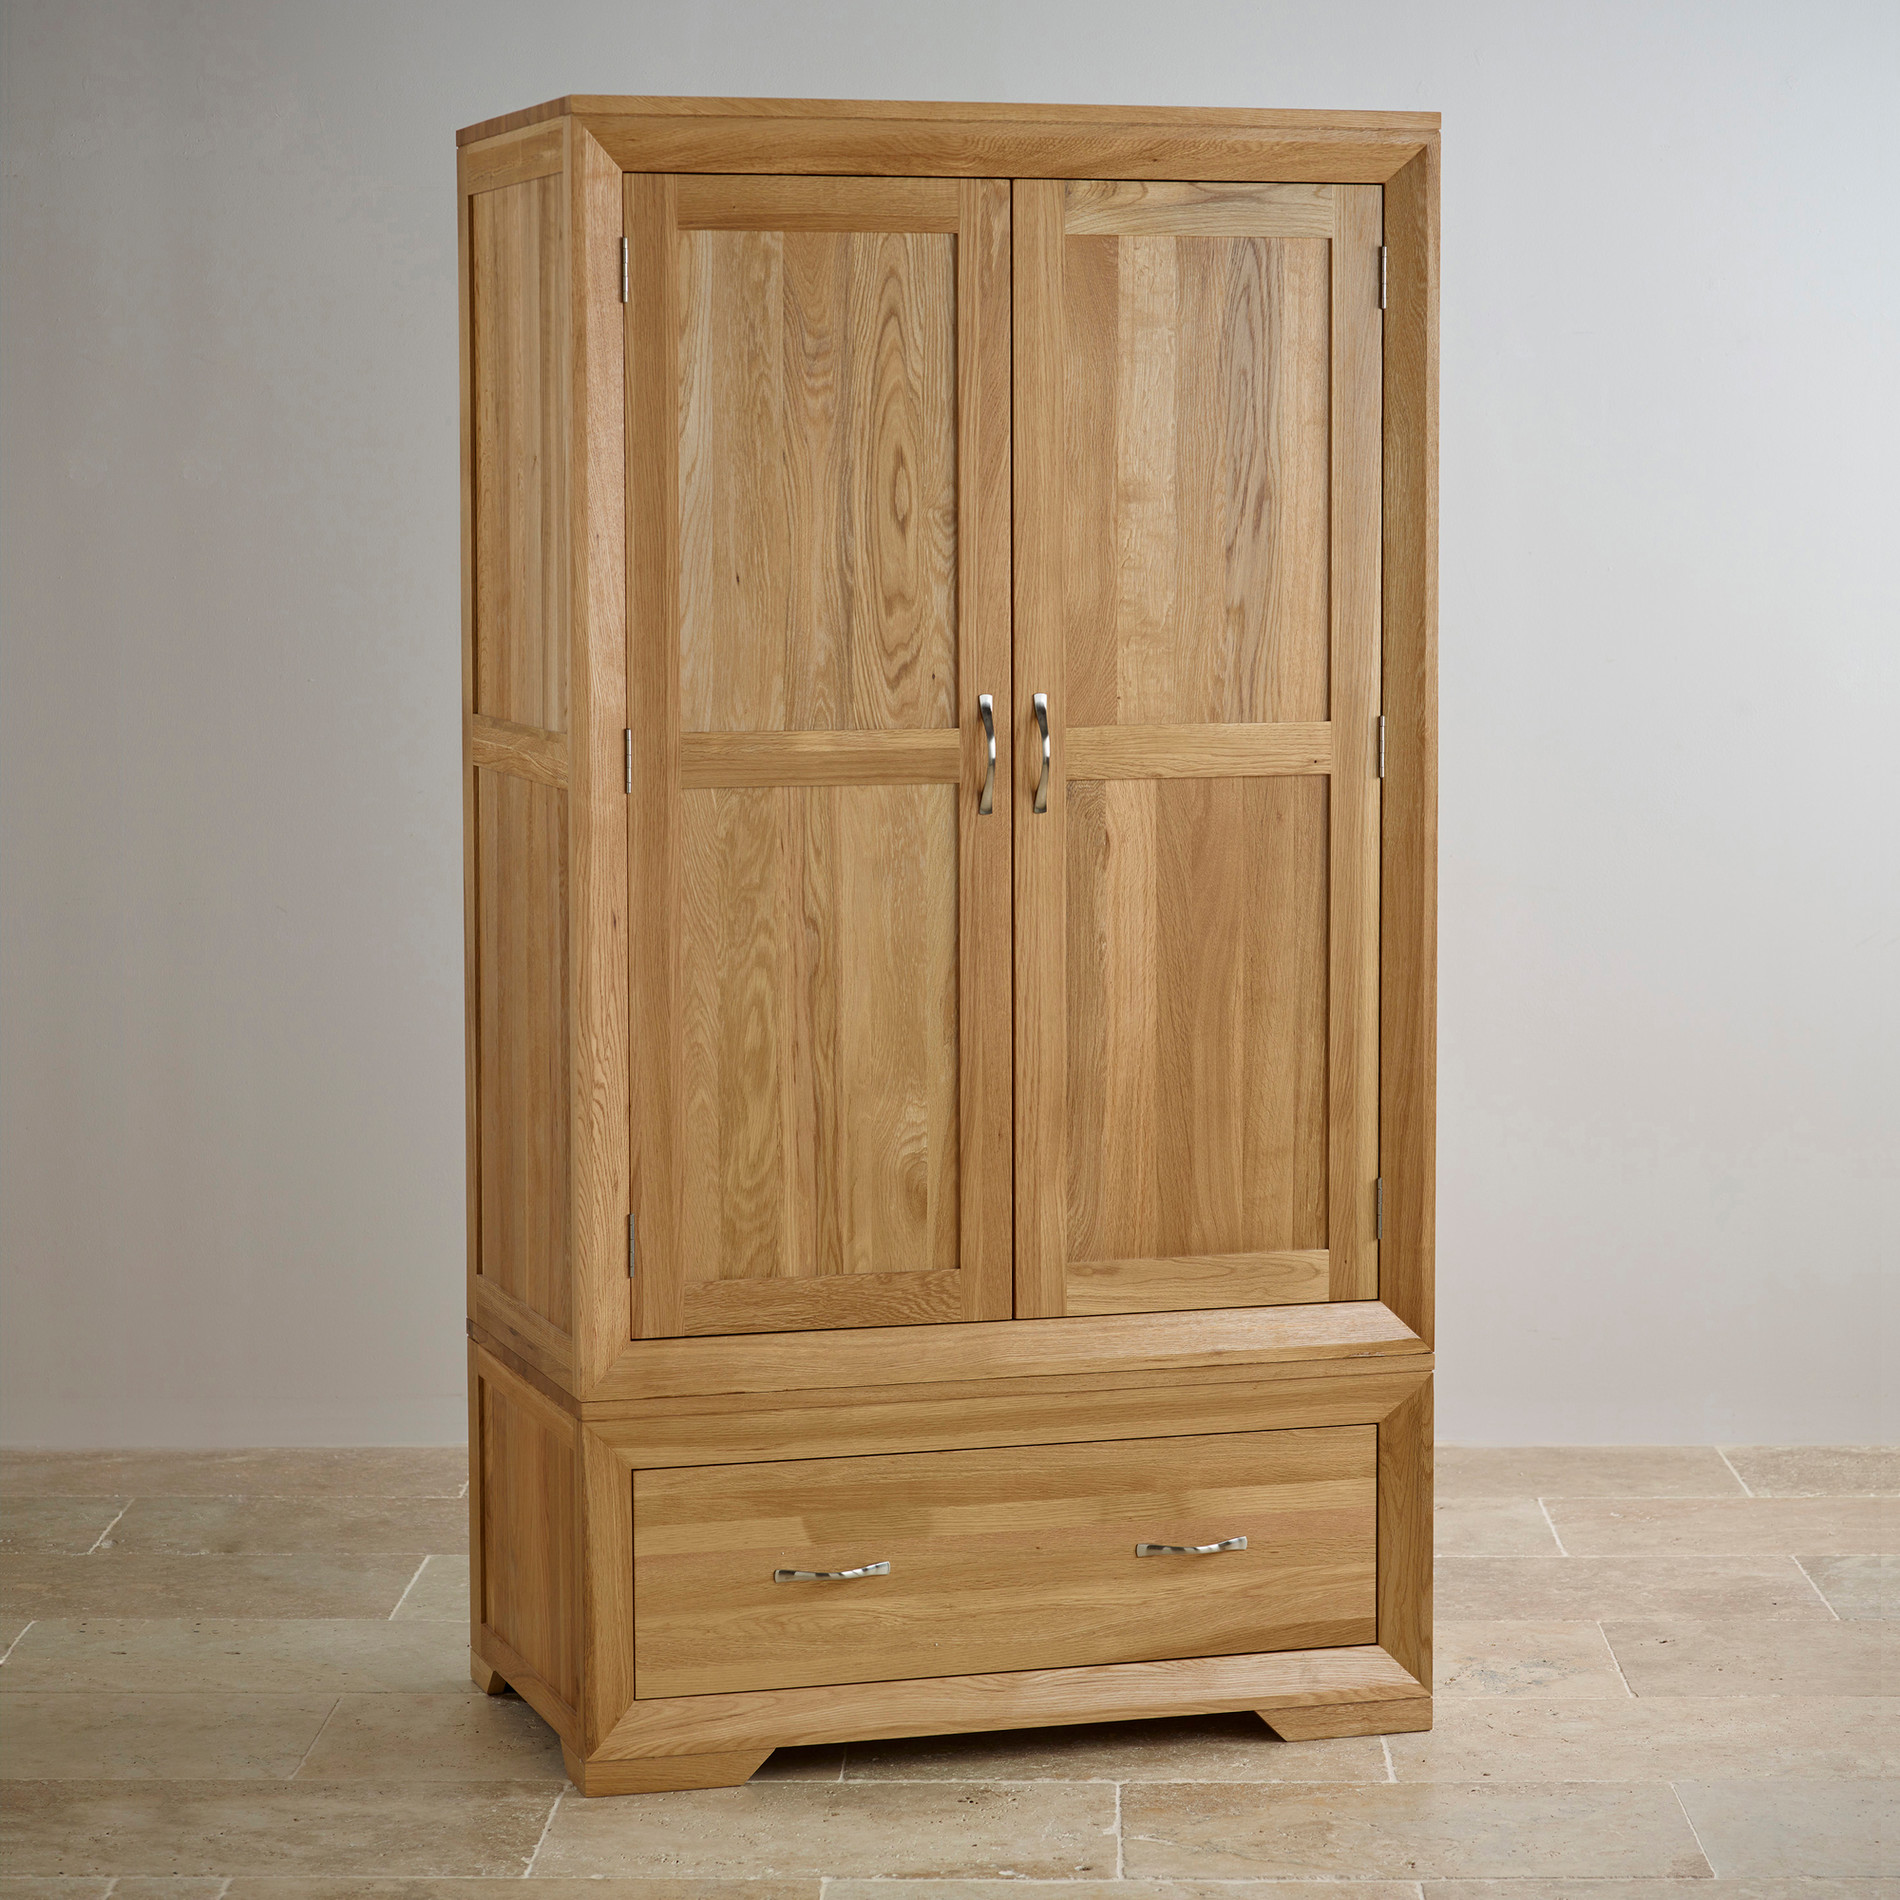 Bedroom Furniture In Nigeria